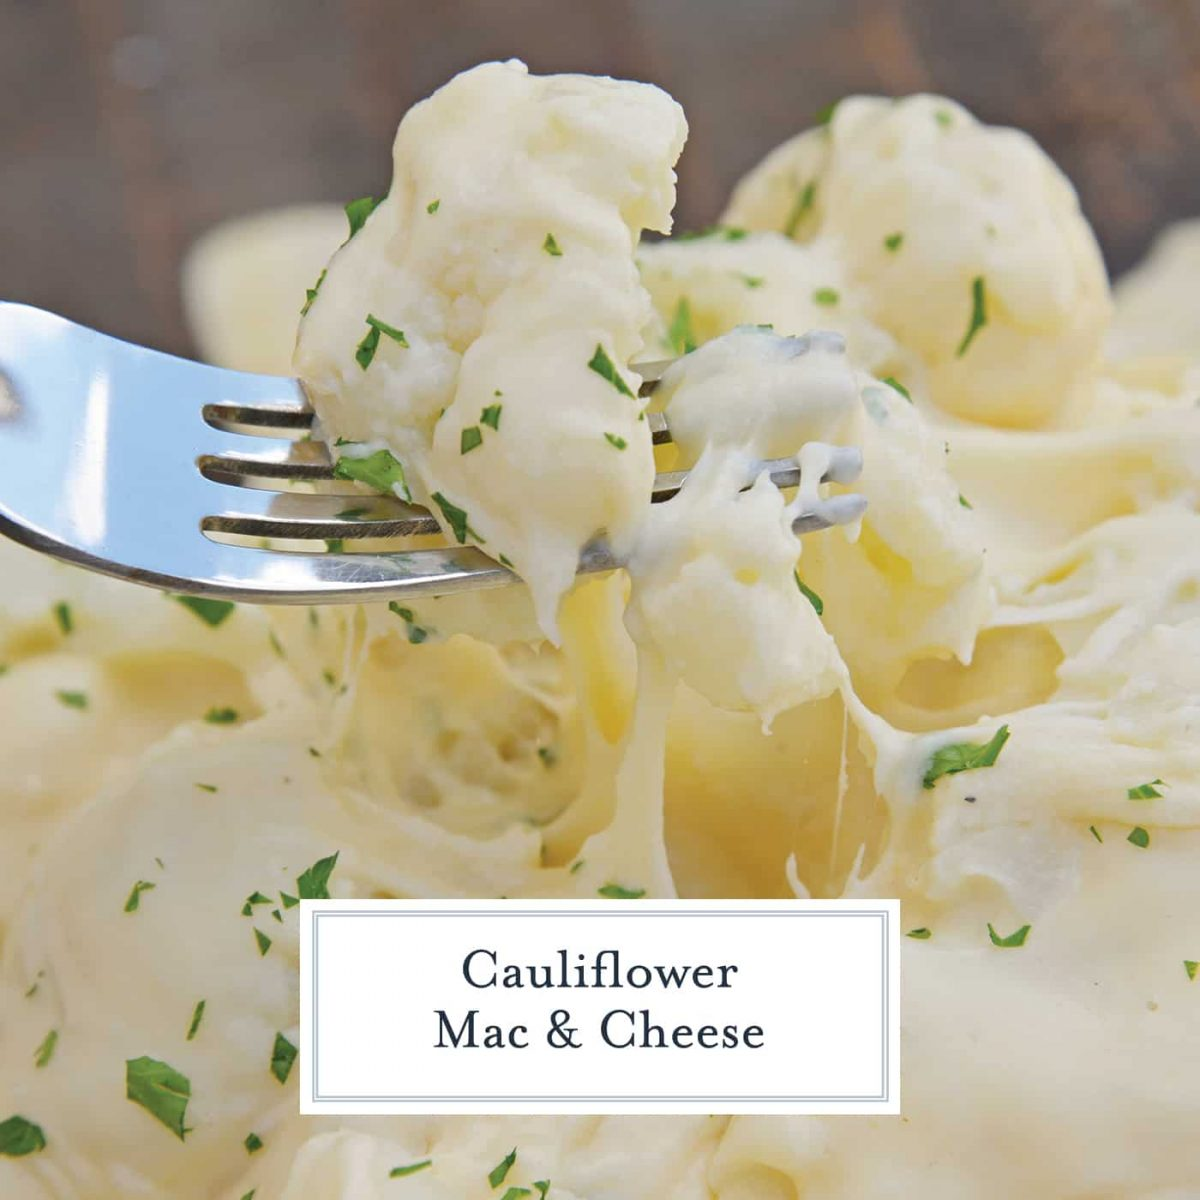 Cauliflower Mac and Cheese is an easy-to-make low carb mac and cheese that follows keto guidelines. A kid-friendly cauliflower side dish! #cauliflowermacandcheese #ketomacandcheese #lowcarbsidedishes www.savoryexperiments.com